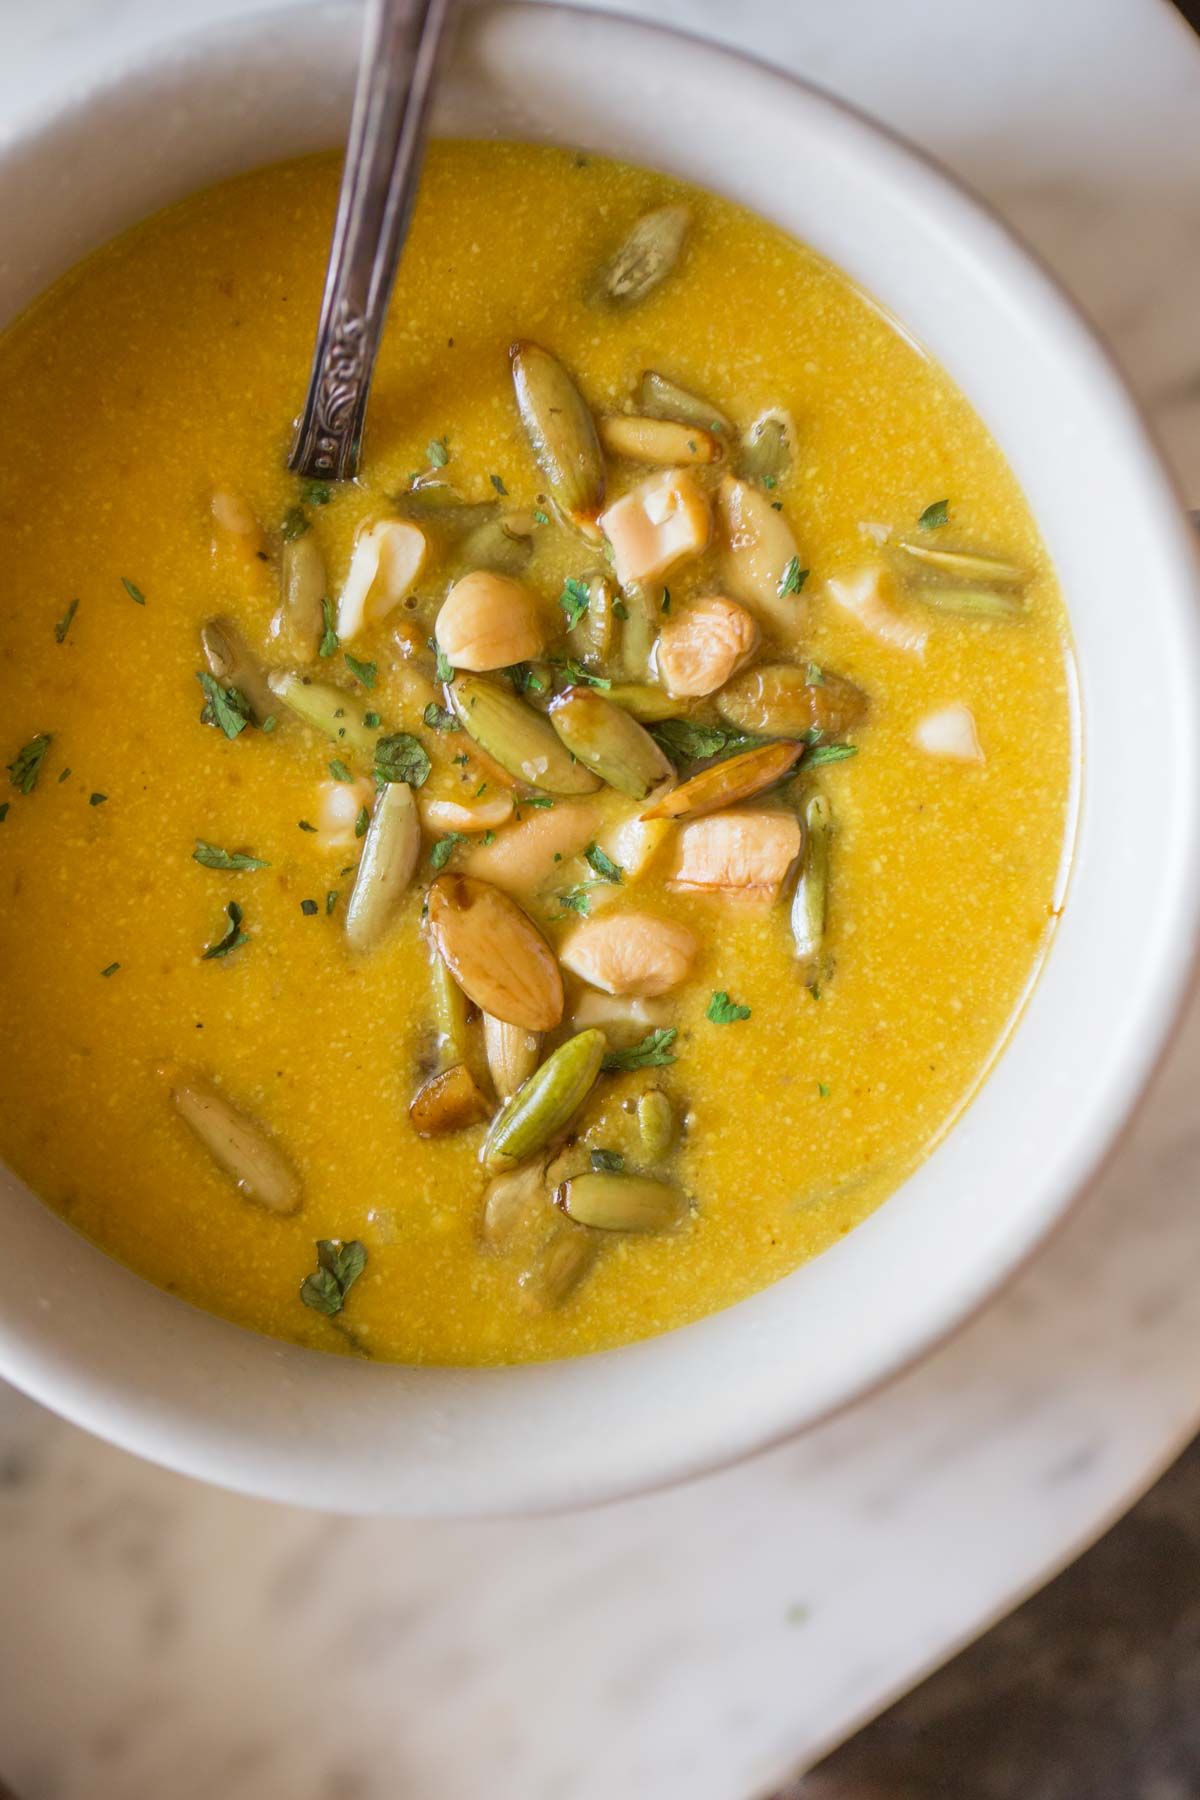 A bowl of Creamy Cashew Pumpkin Soup, garnished with pepitas, chopped cashews and parsley, with a spoon in it.